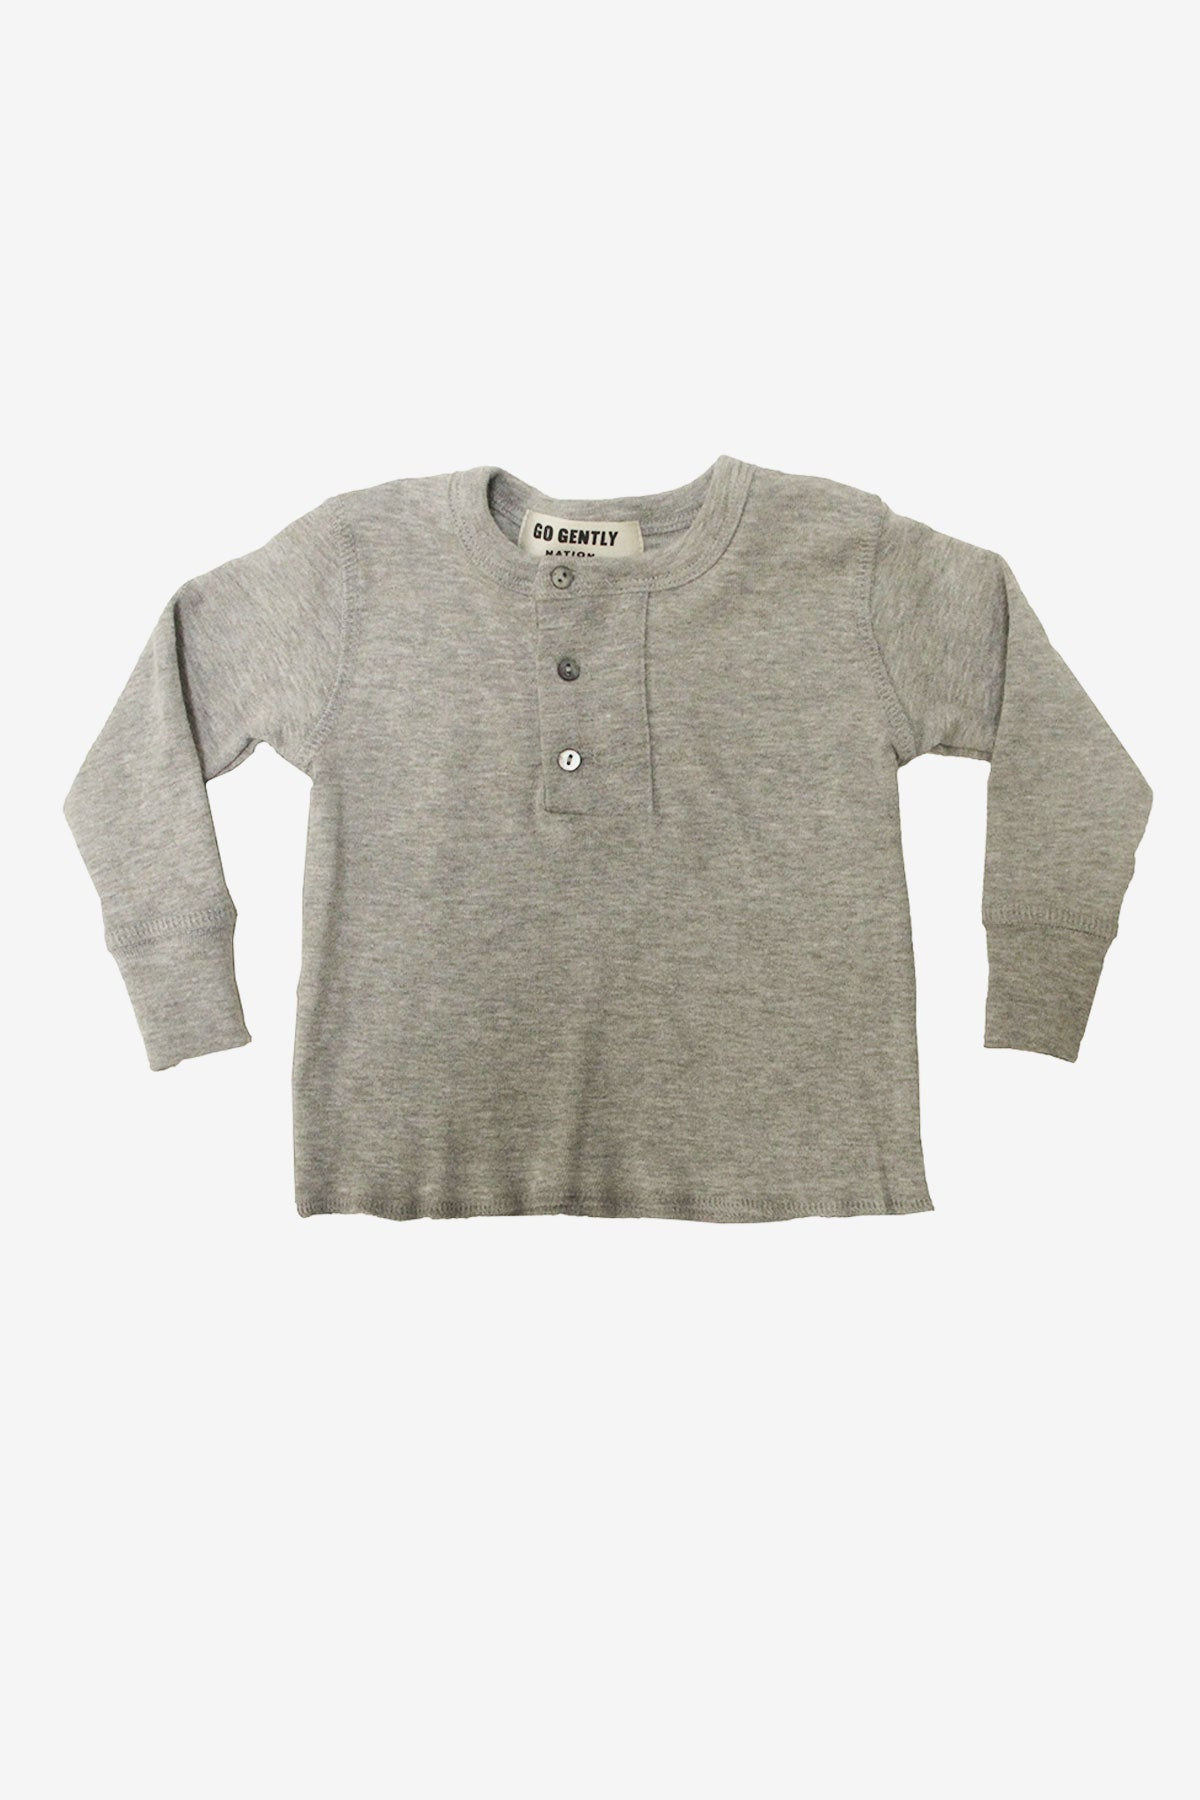 Go Gently Nation Placket Henley - Heather Gray